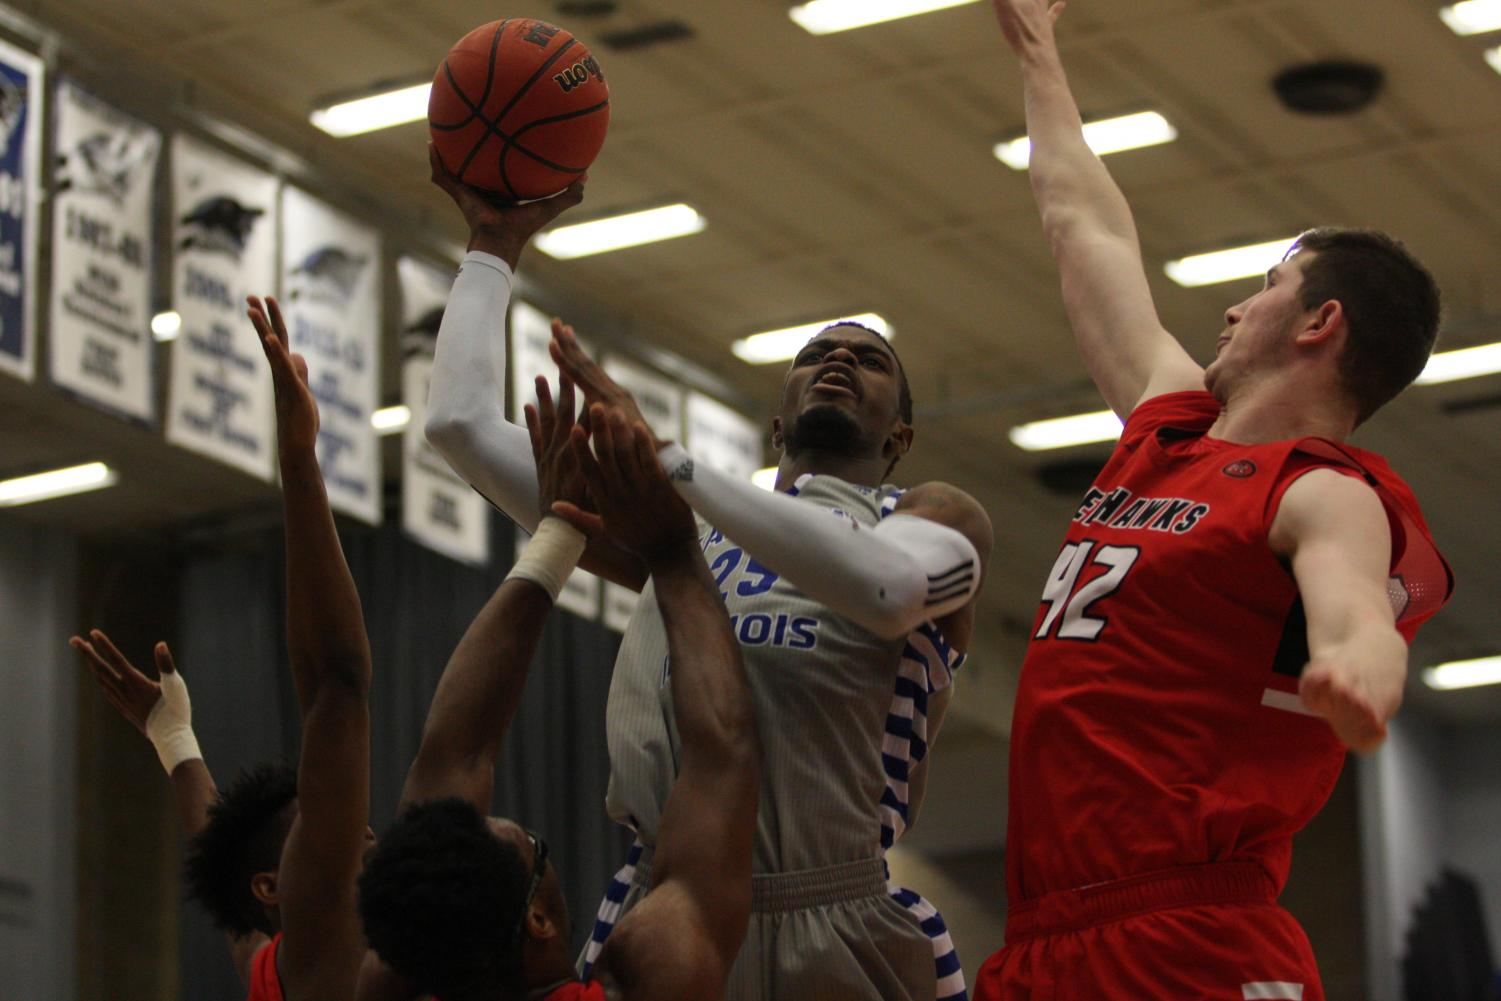 Senior Muusa Dama goes up for a right-hand hook in the Panthers' 86-74 loss to Southeast Missouri Jan. 20 in Lantz Arena. Eastern lost to Belmont 81-59 Thursday on the road.